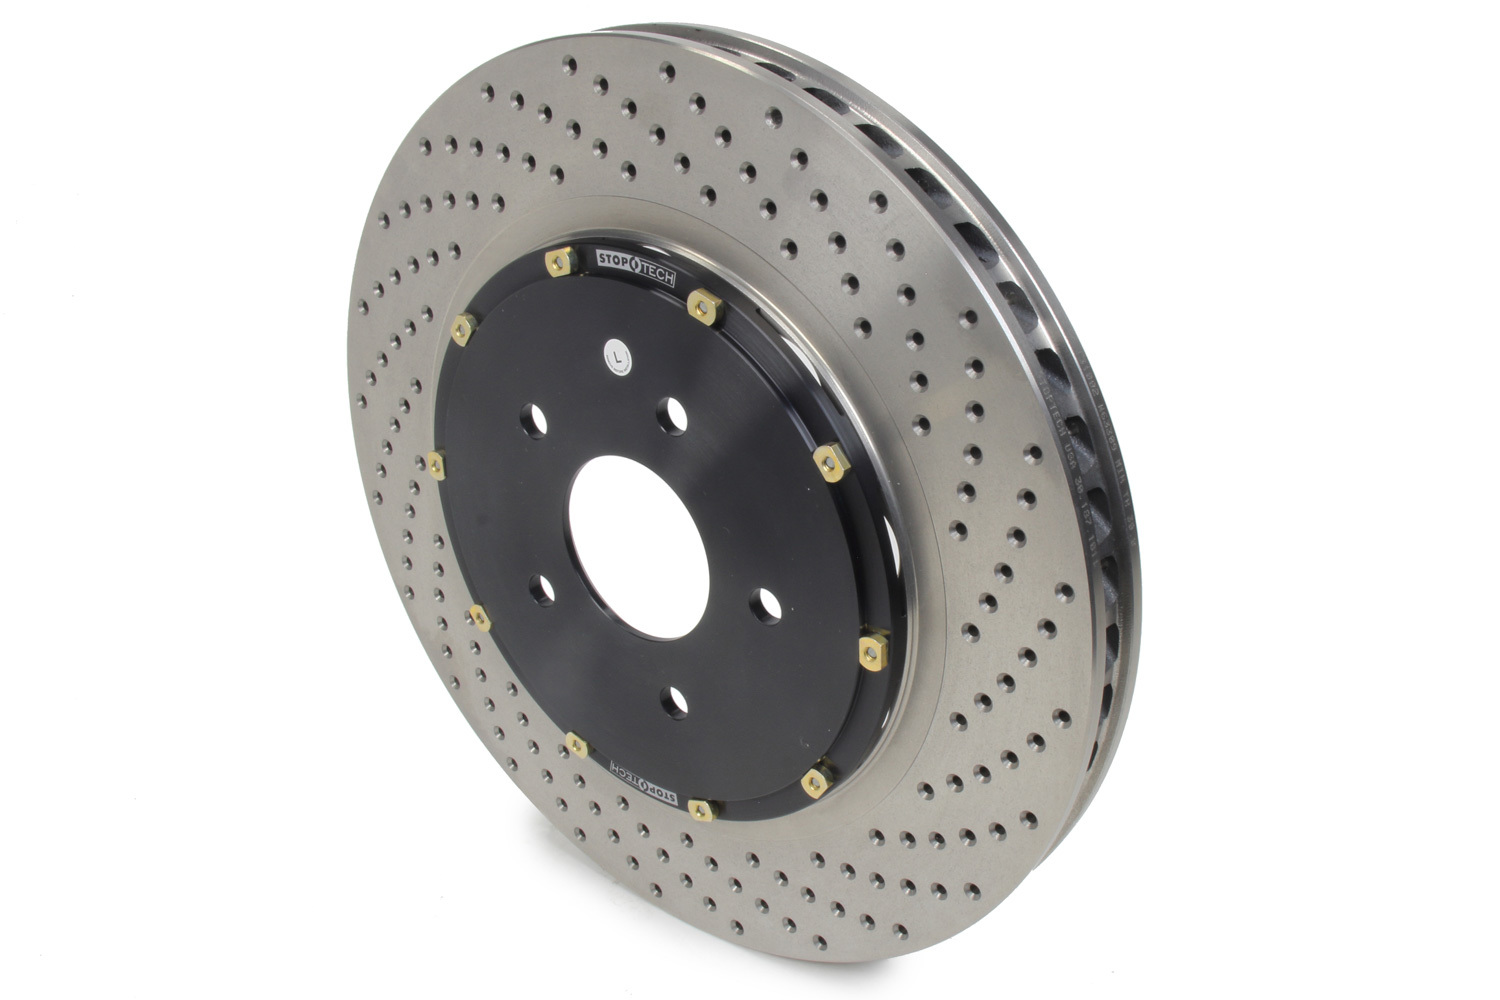 Stoptech 129.62102.15 Brake Rotor, AeroRotor, Front, Driver Side, Drilled, 355 mm OD, 32 mm Thick, 5 x 120.65 mm Bolt Pattern, Iron, Black Paint, Each